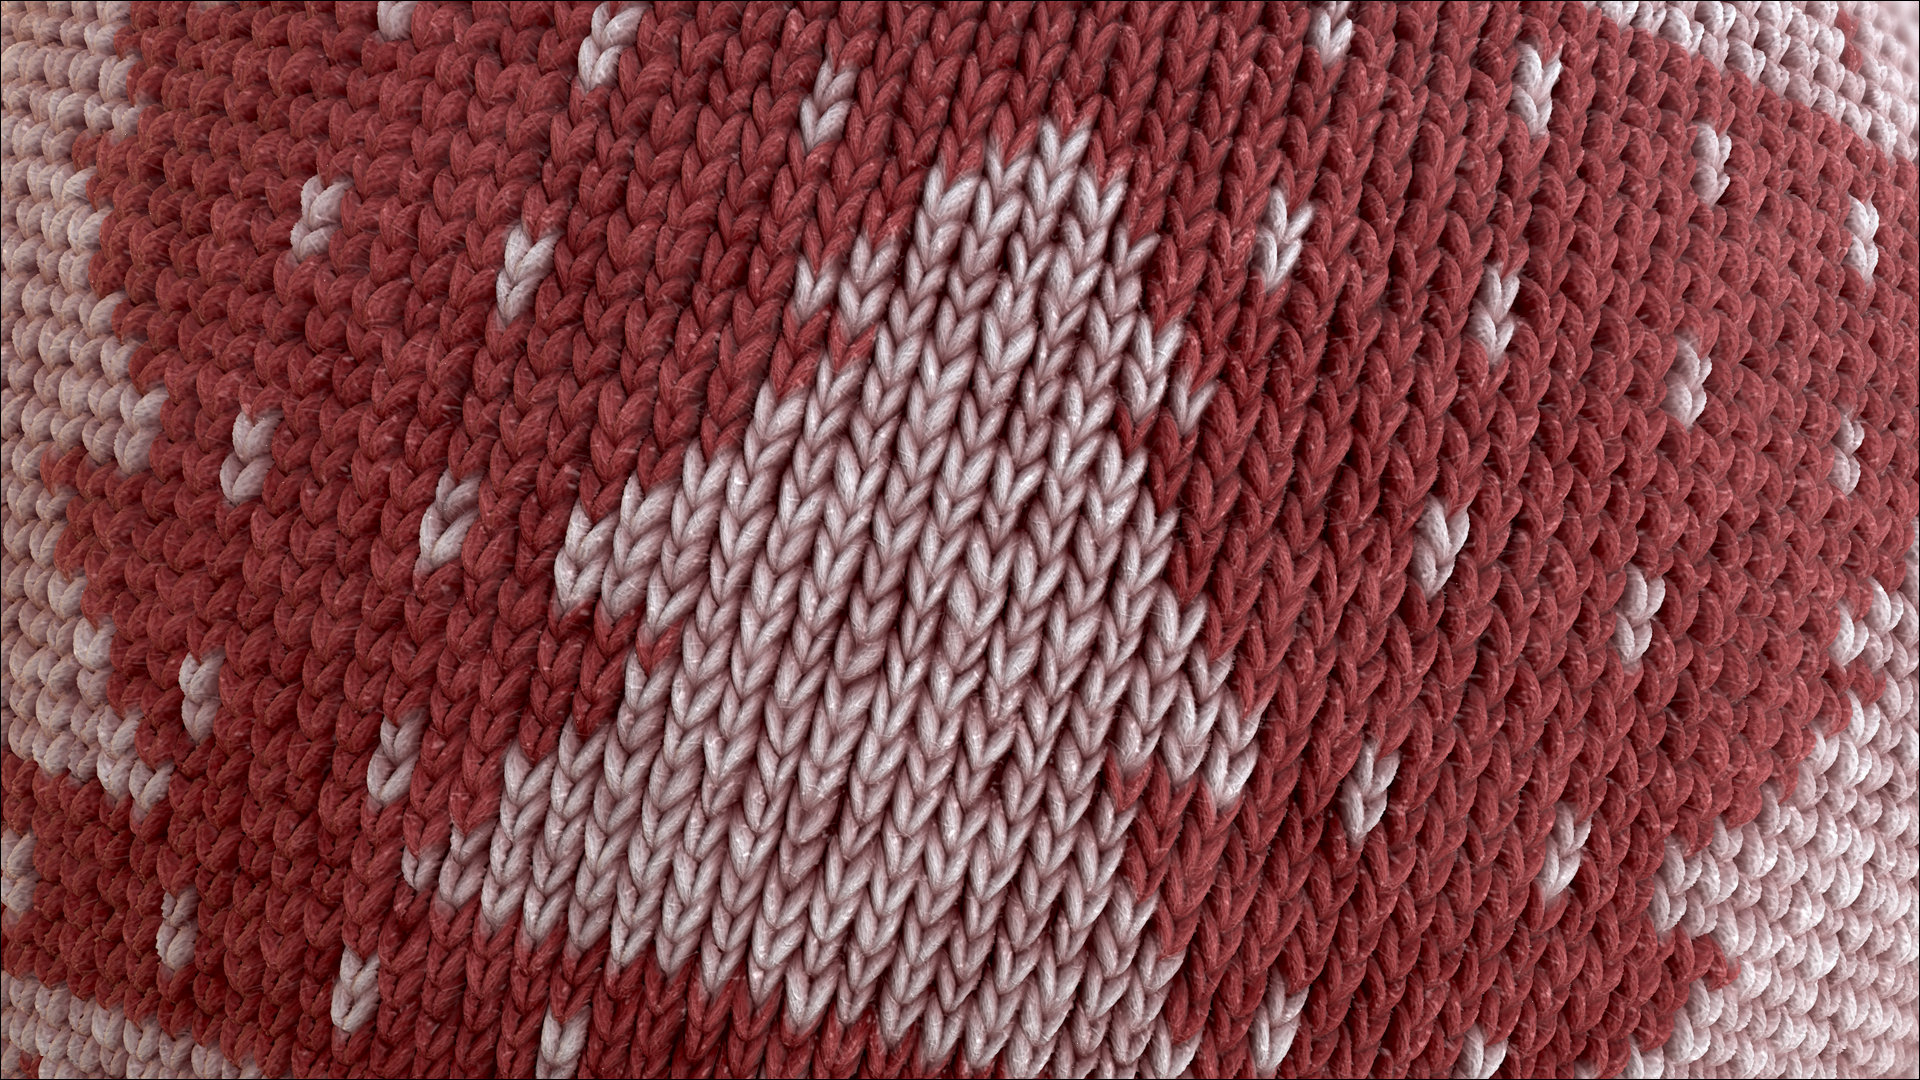 Substance Material | Christmas Jumper - FREE Gumroad looking